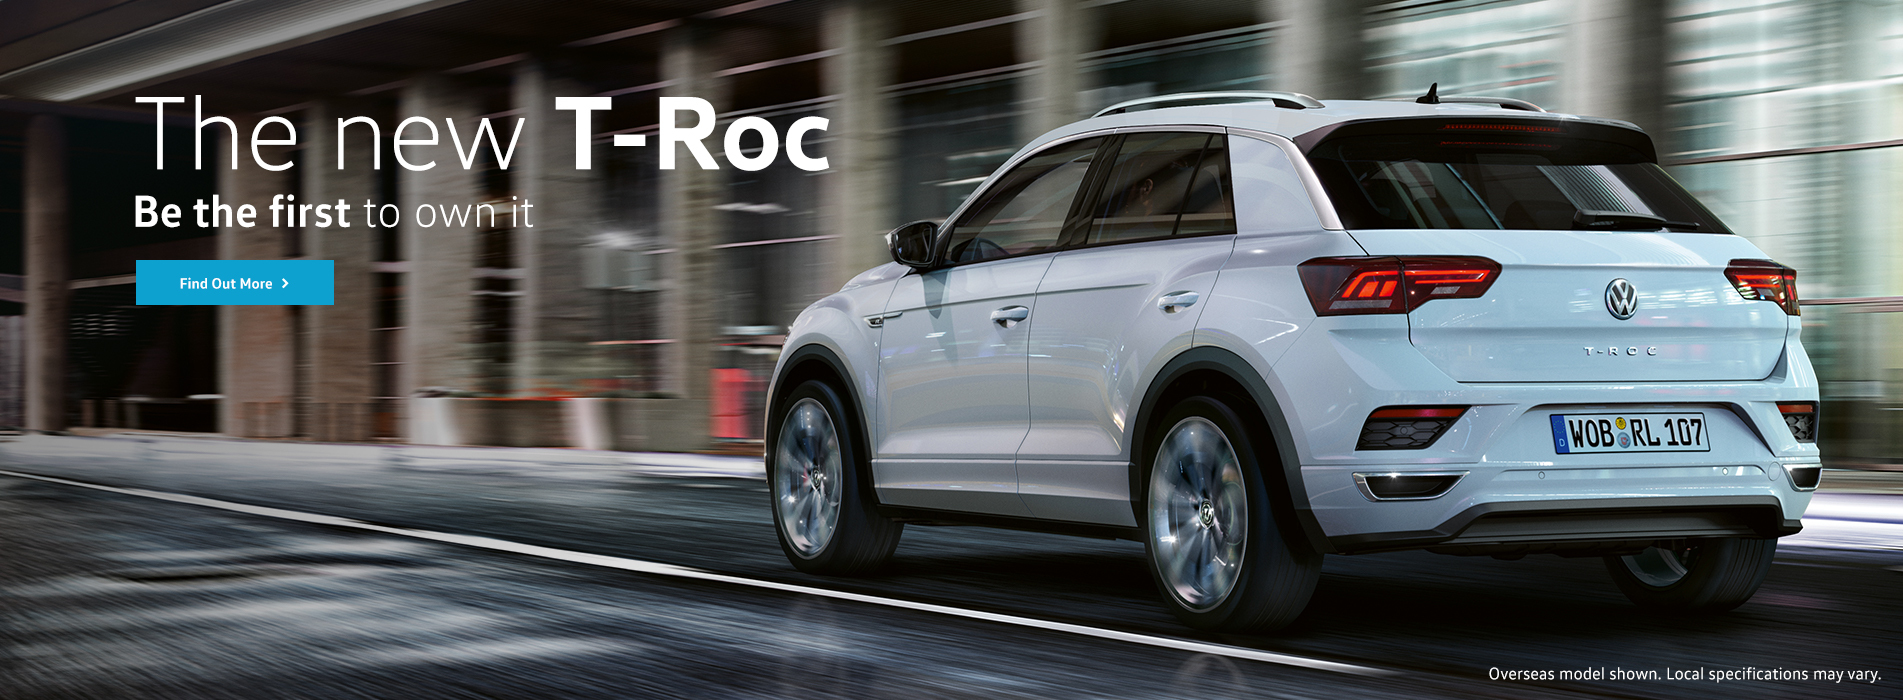 The new T-Roc. Be the first to own it.